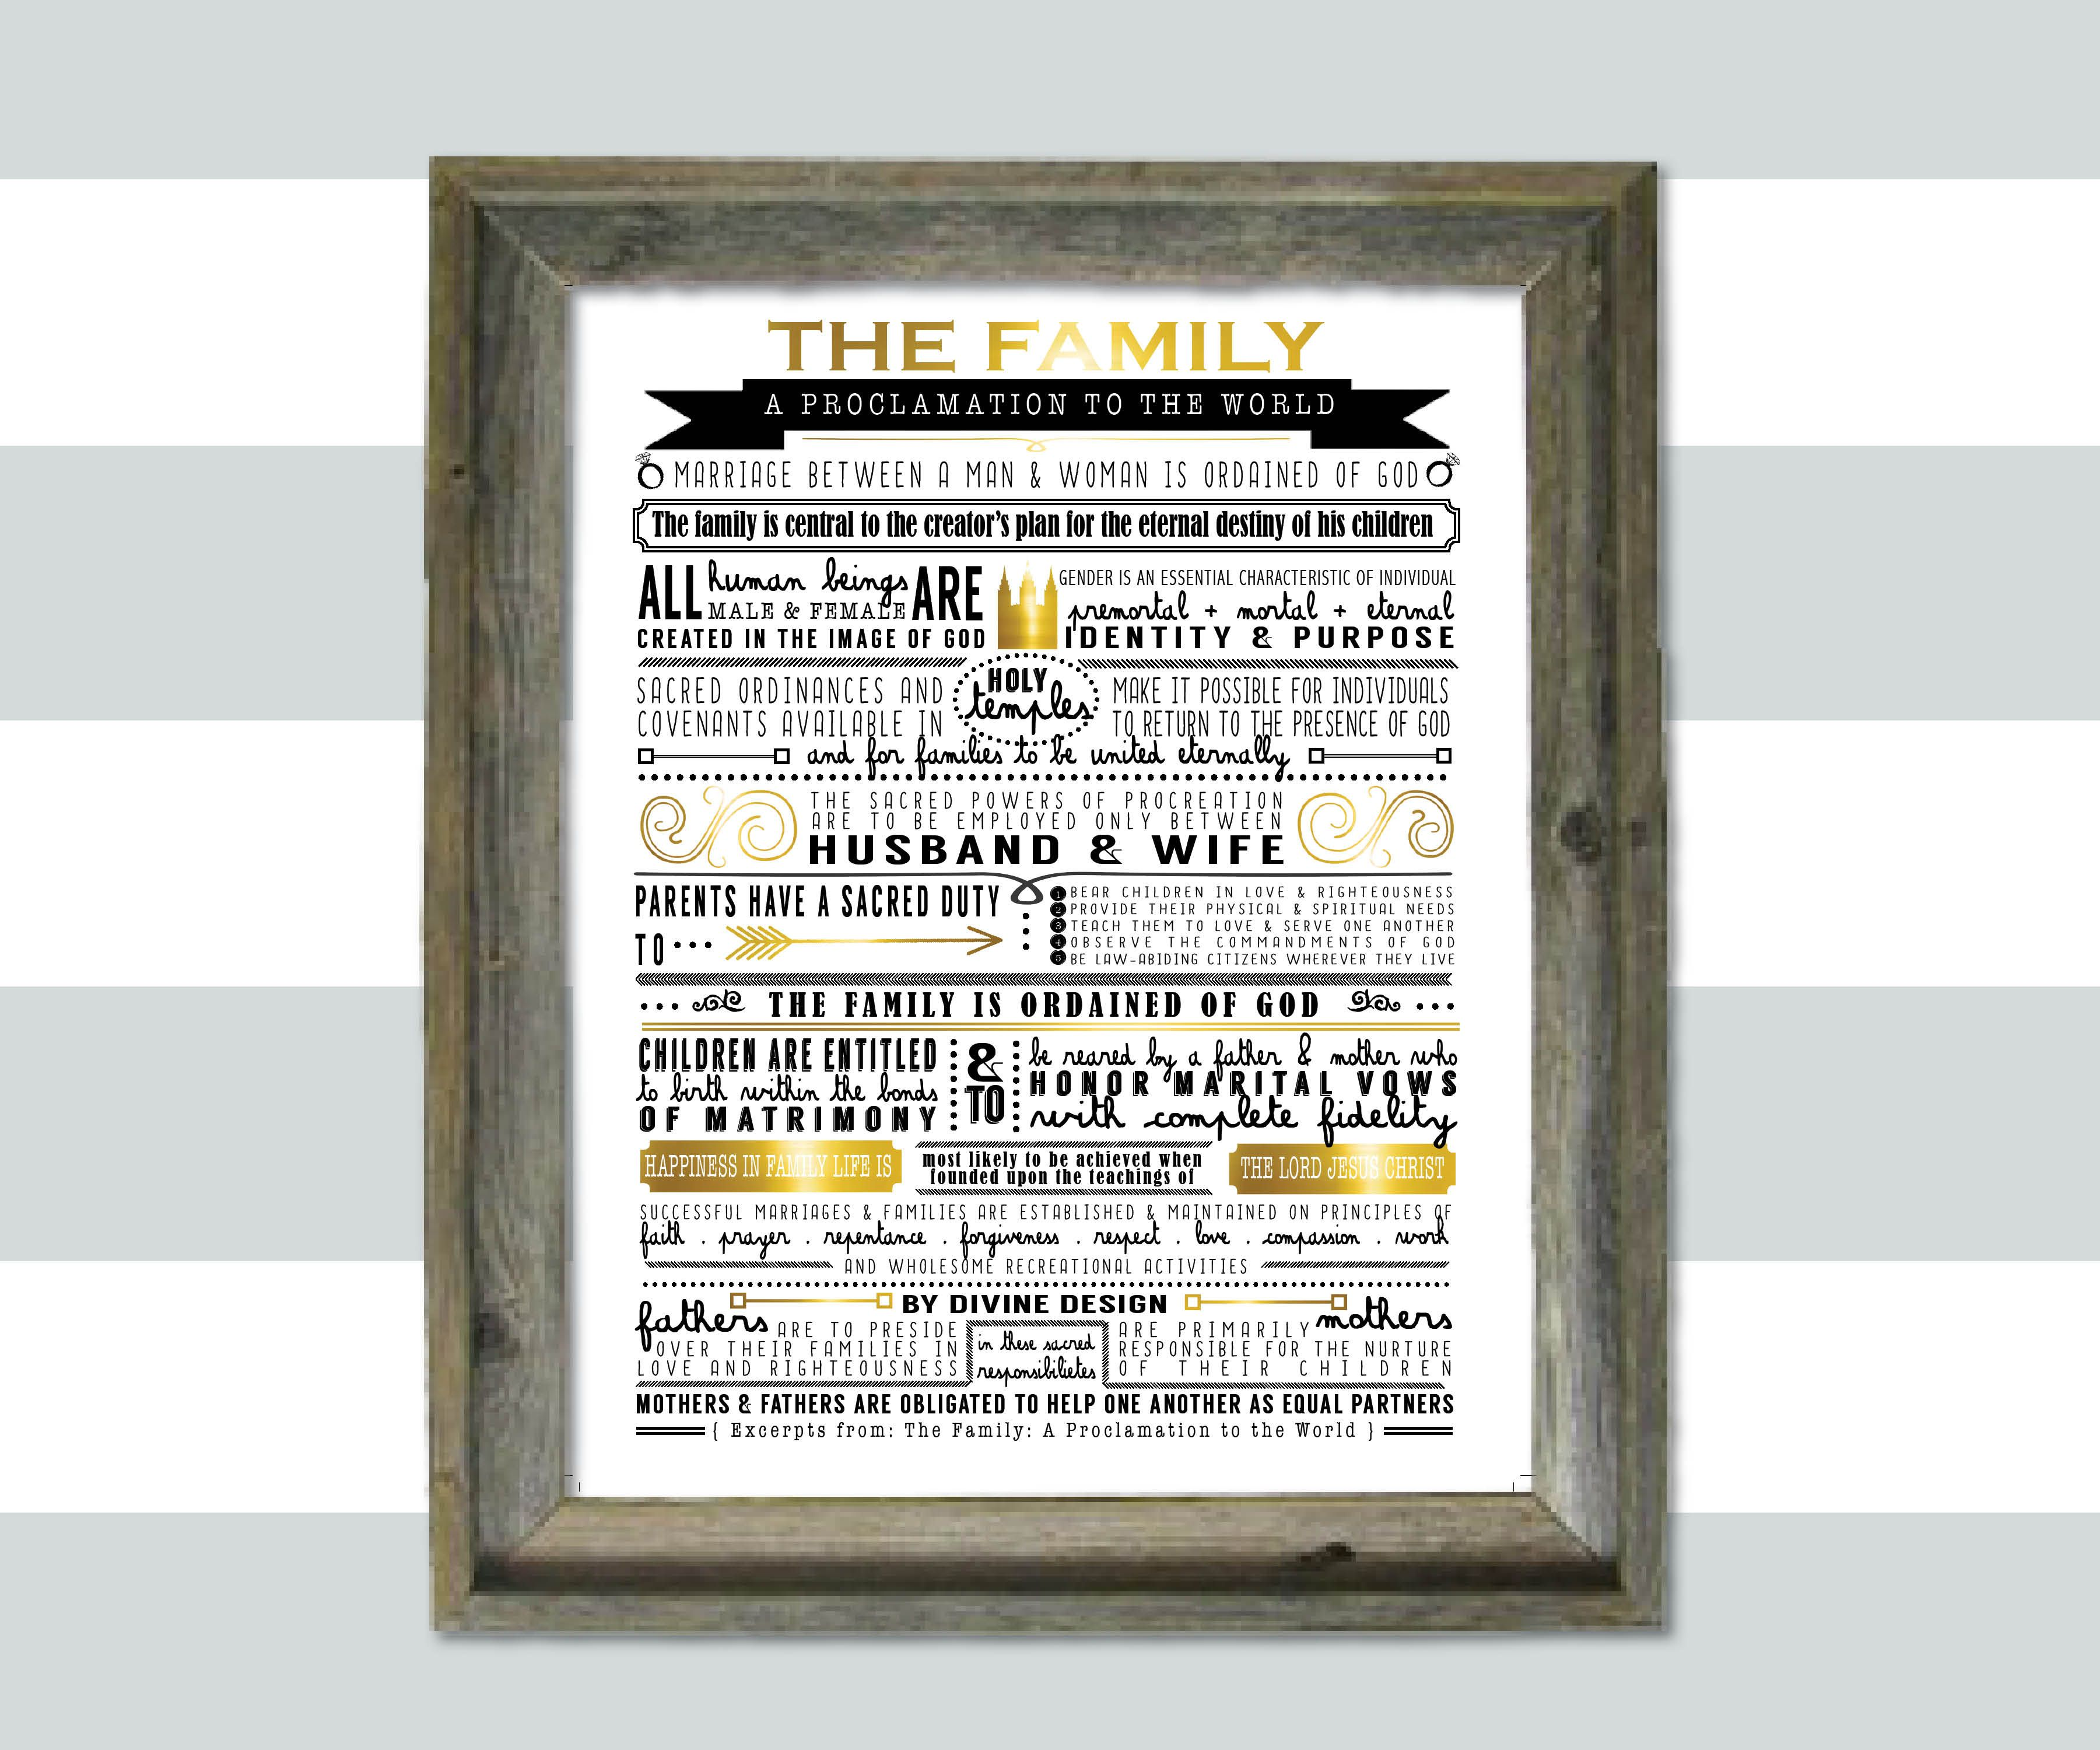 Excerpts from The Proclamation to the Family by DubDubDesigns dubdubdesigns.etsy.com